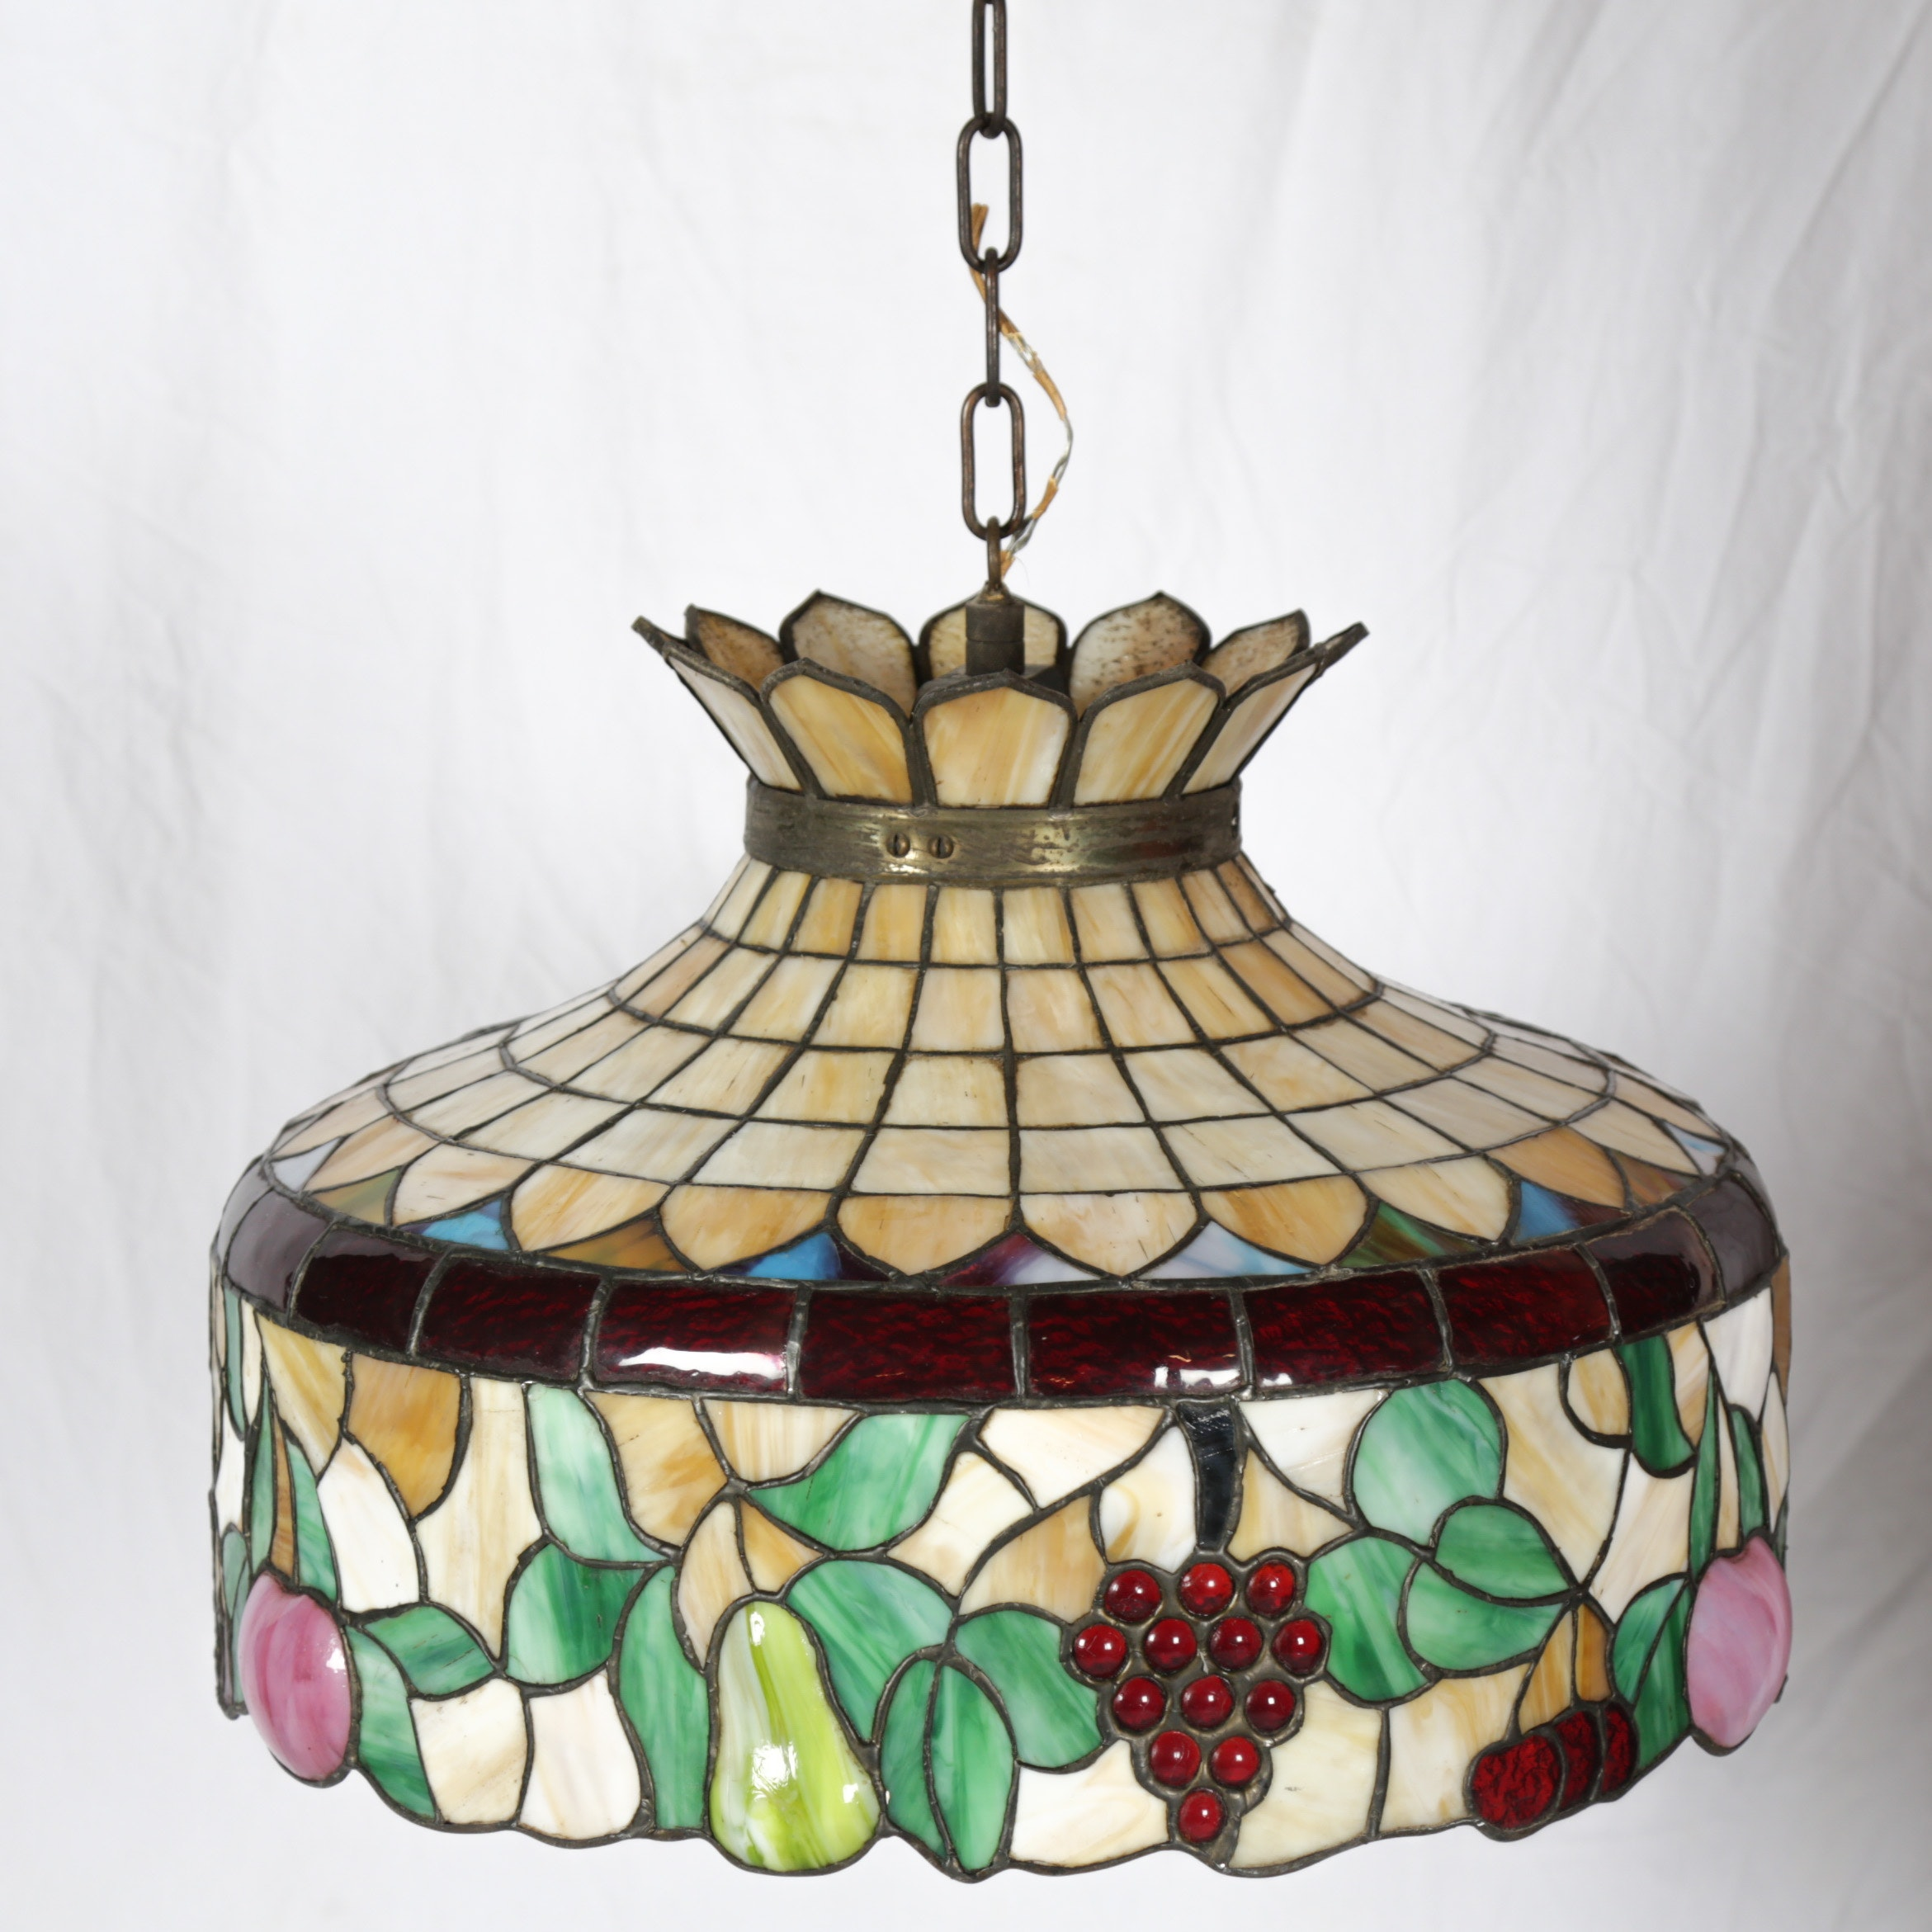 Stained Glass Fruit-Themed Pendant Light